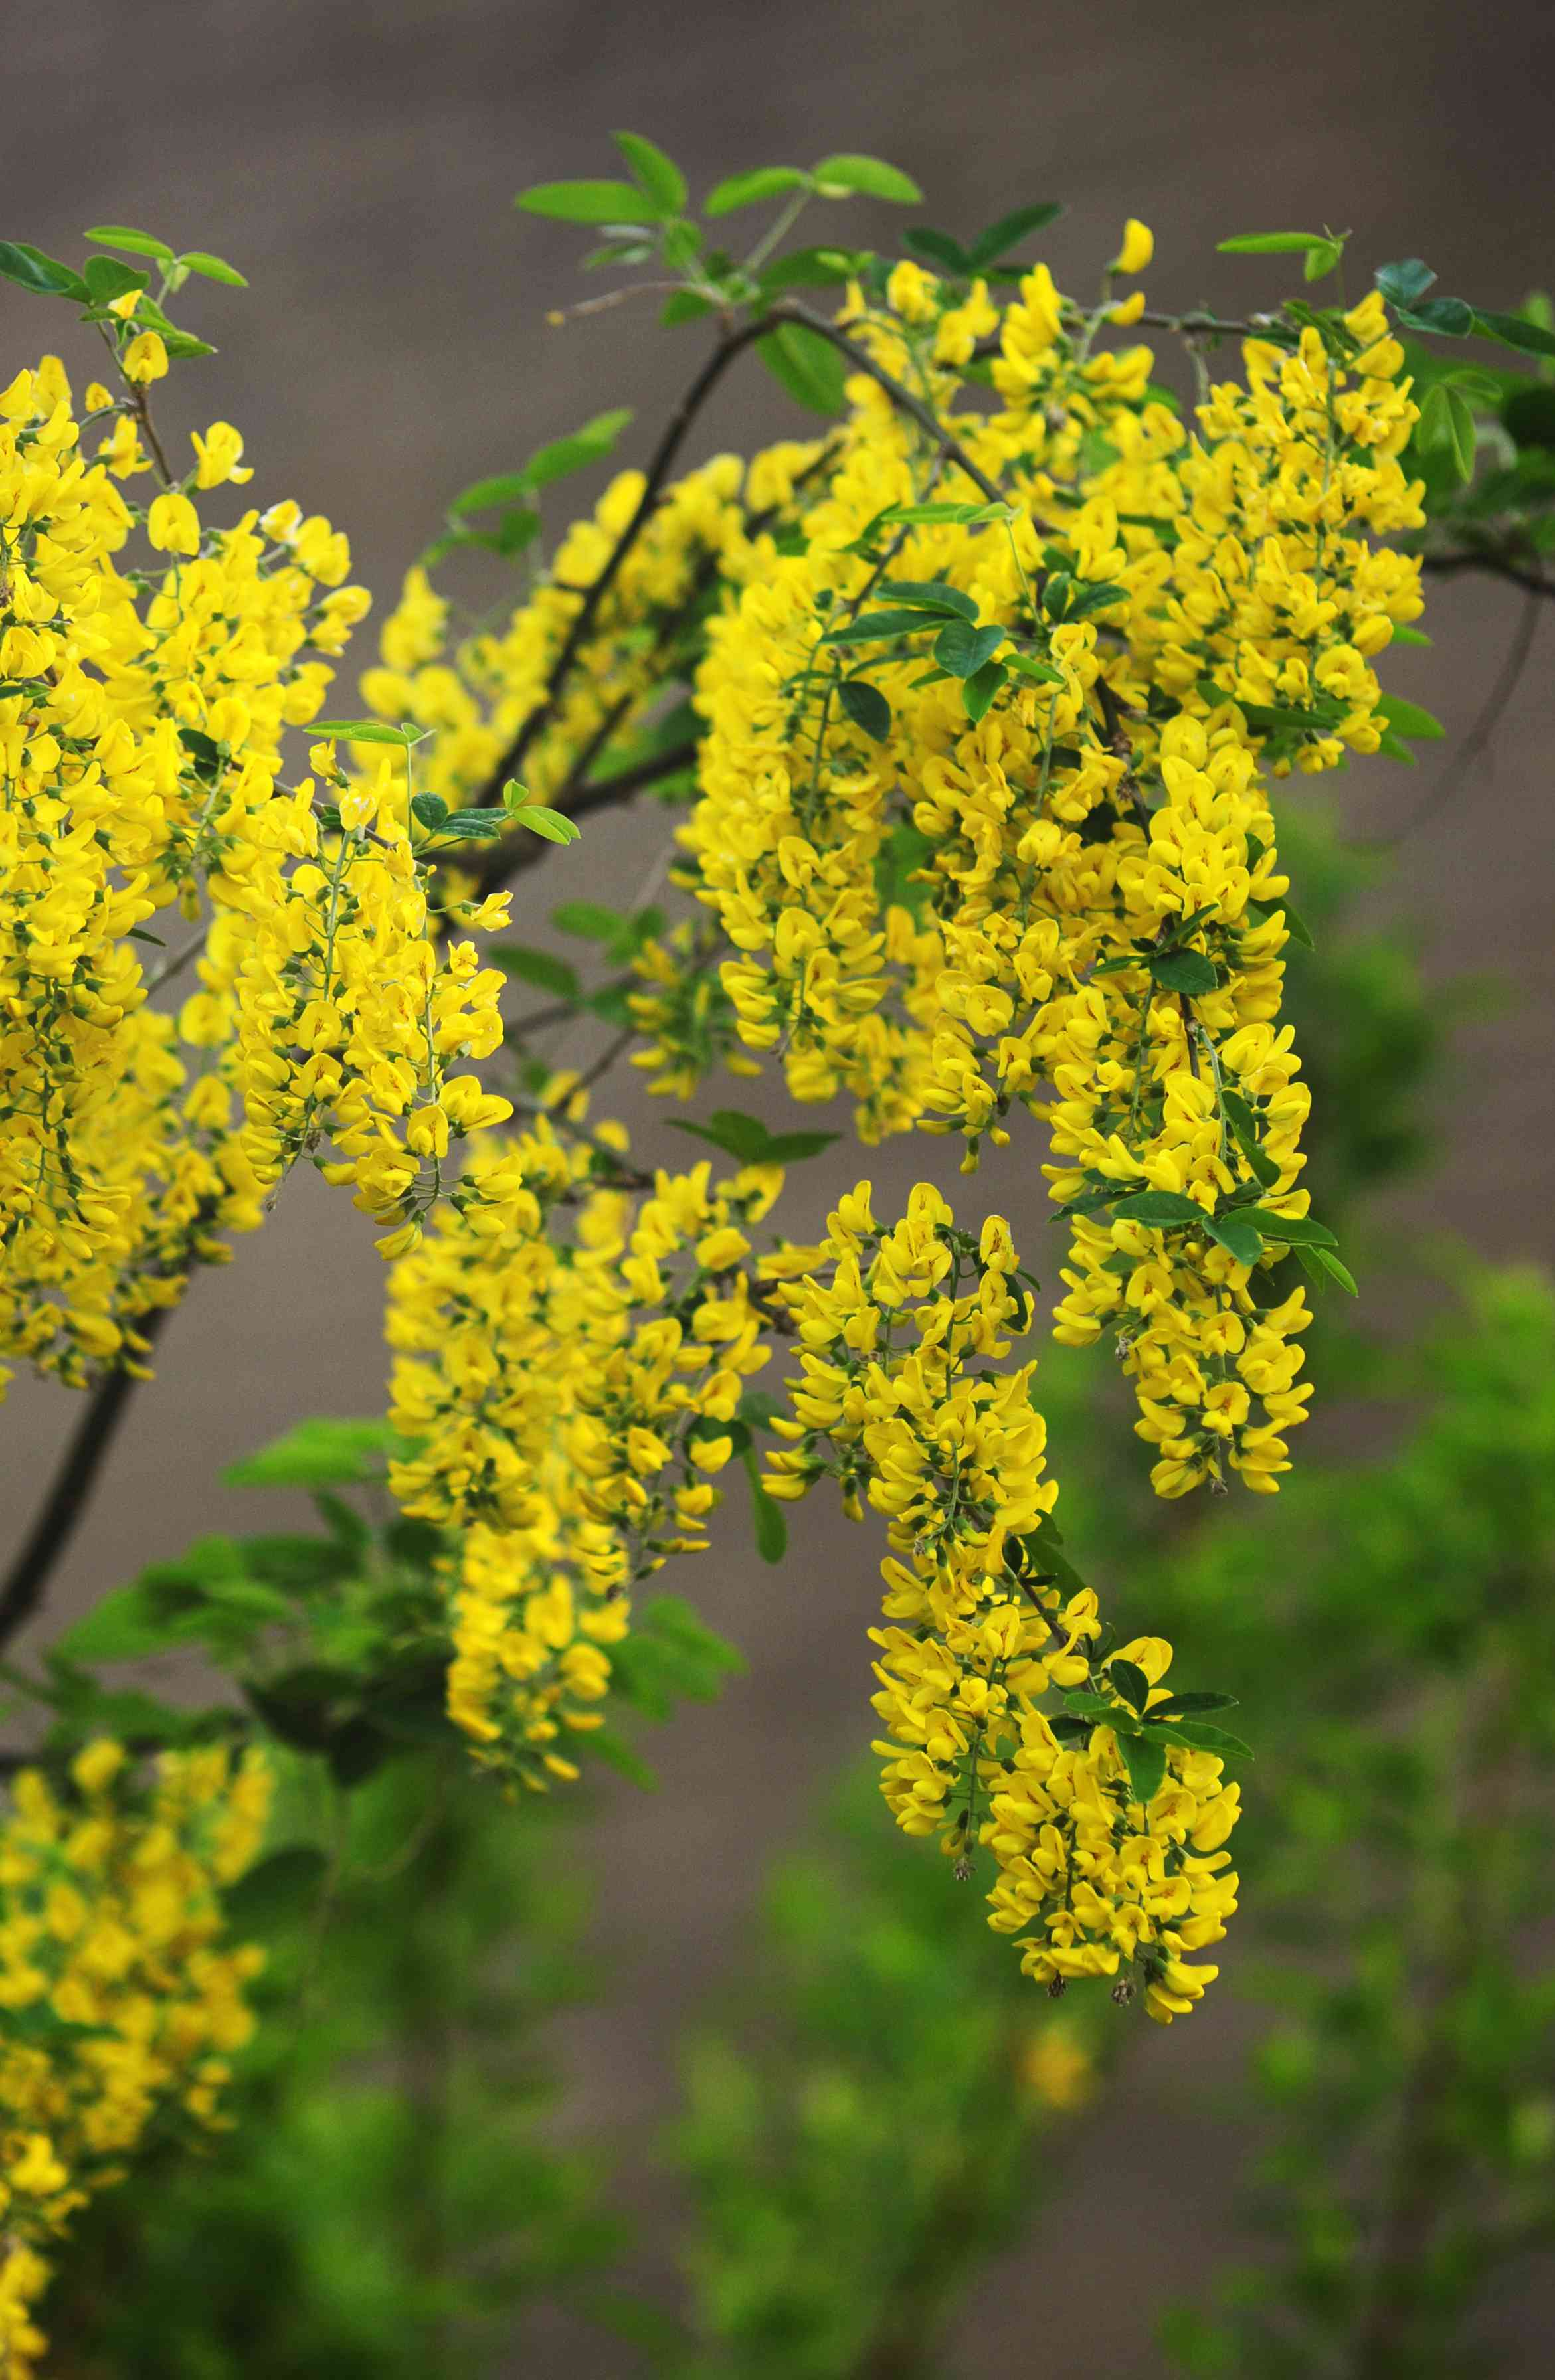 Golden chain tree with golden-yellow flowers cluster on branch